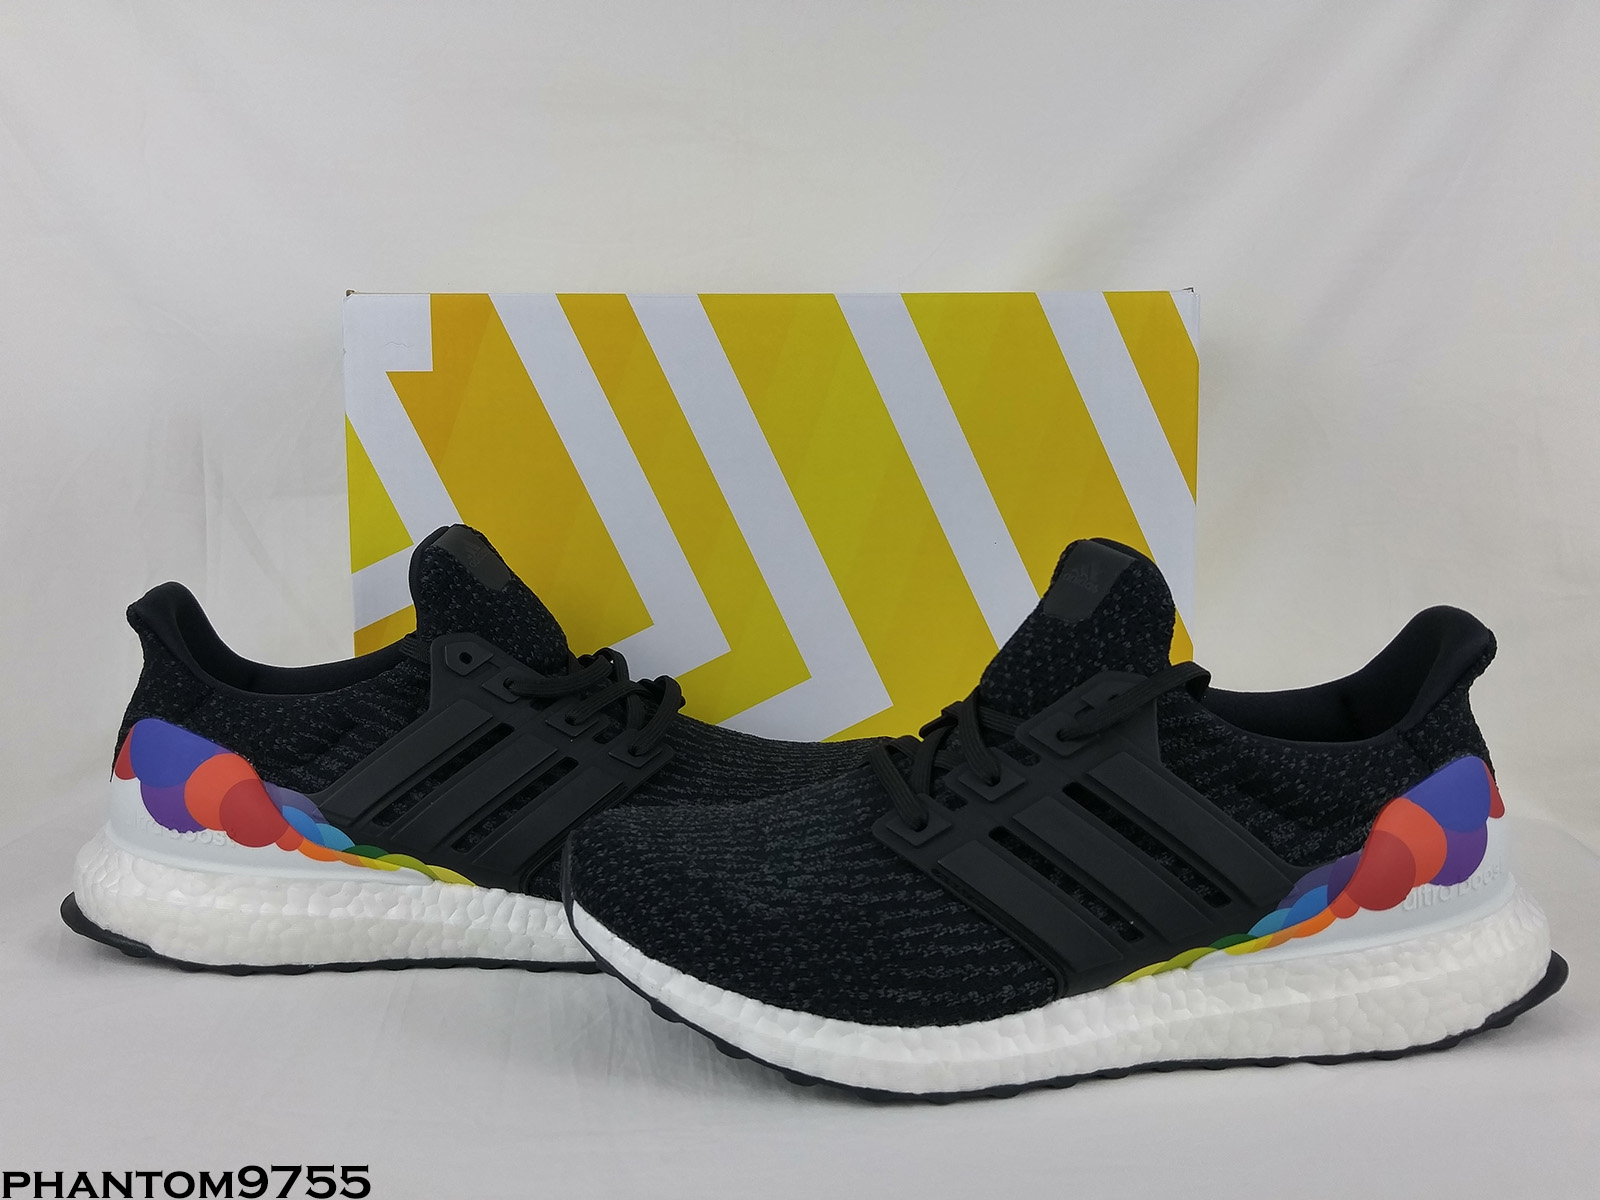 9fc6774af75d7 Adidas adidas Ultra BOOST 3.0 M LTD  Pride  CP9632 Size 7 - Low-Top  Sneakers for Sale - Grailed